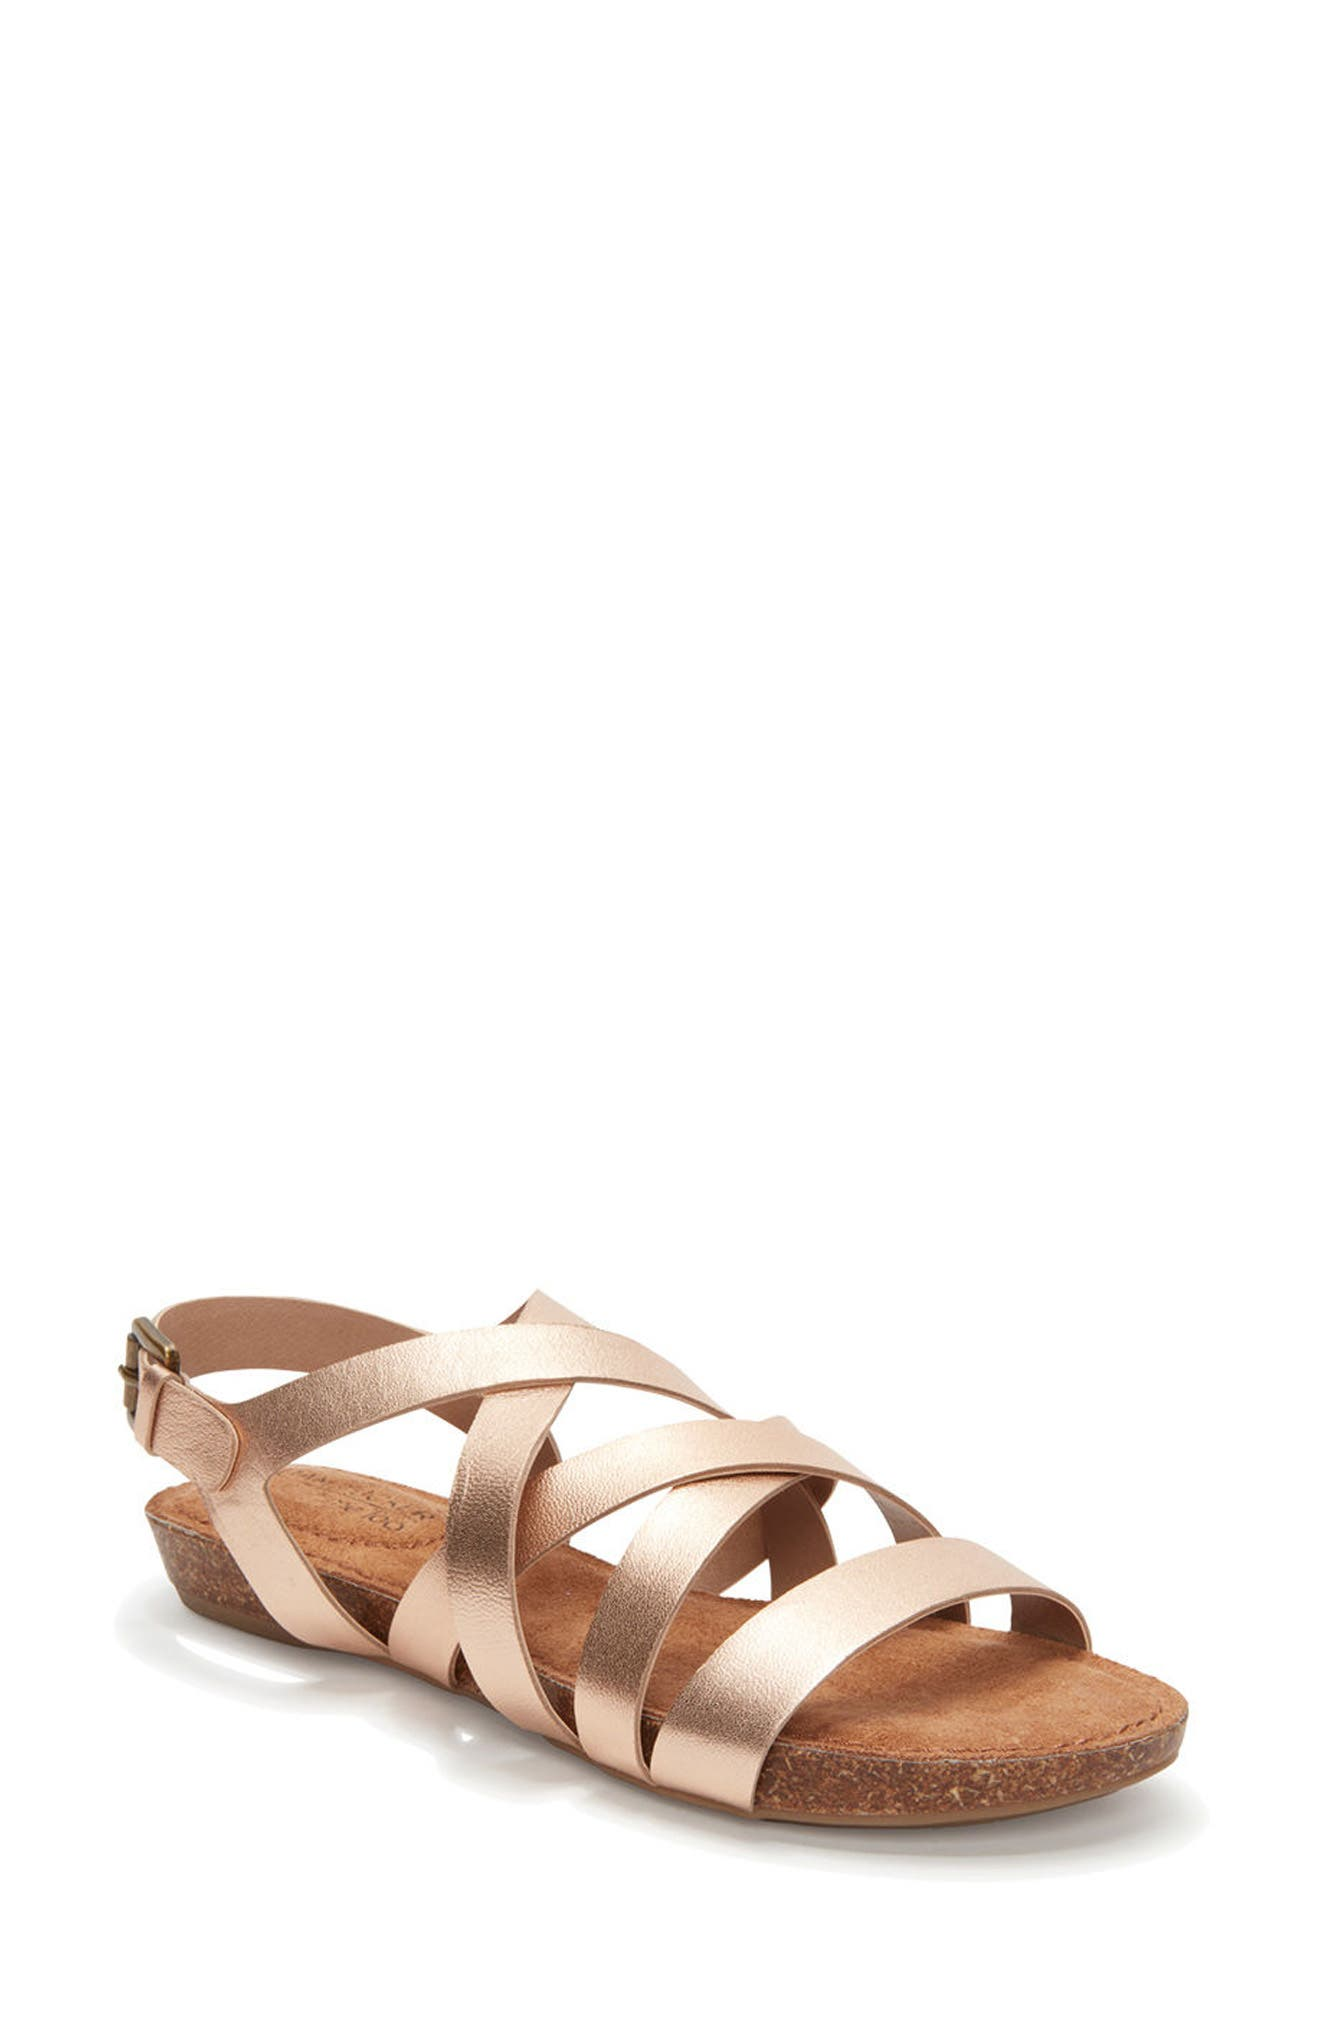 Adam Tucker Nickie Sandal,                         Main,                         color, Champagne Leather